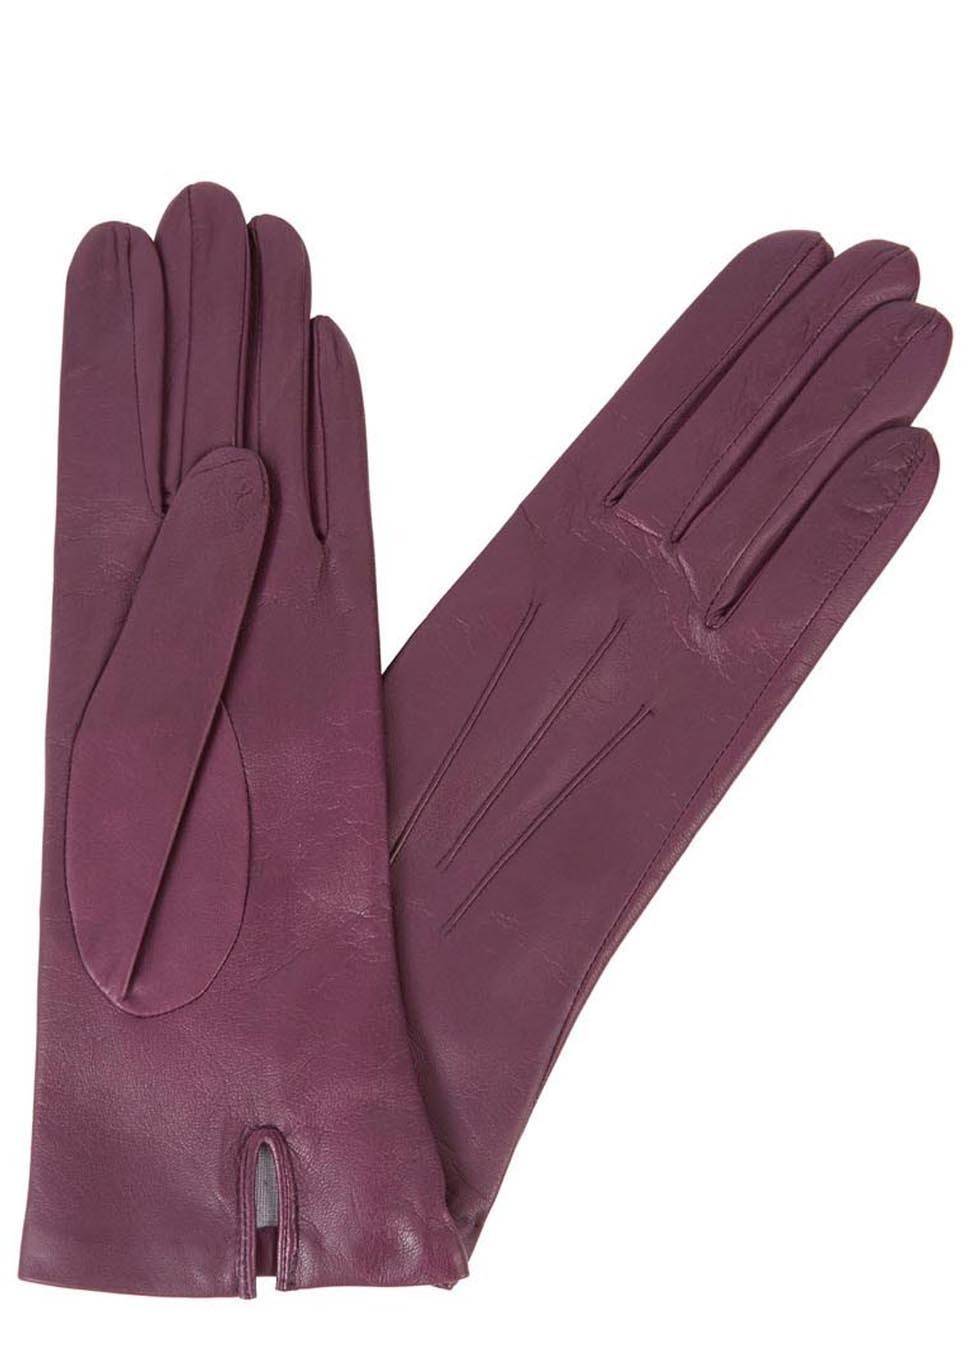 Purple Silk Lined Leather Gloves - predominant colour: aubergine; occasions: casual, creative work; type of pattern: standard; style: standard; length: wrist; material: leather; pattern: plain; season: s/s 2016; wardrobe: highlight